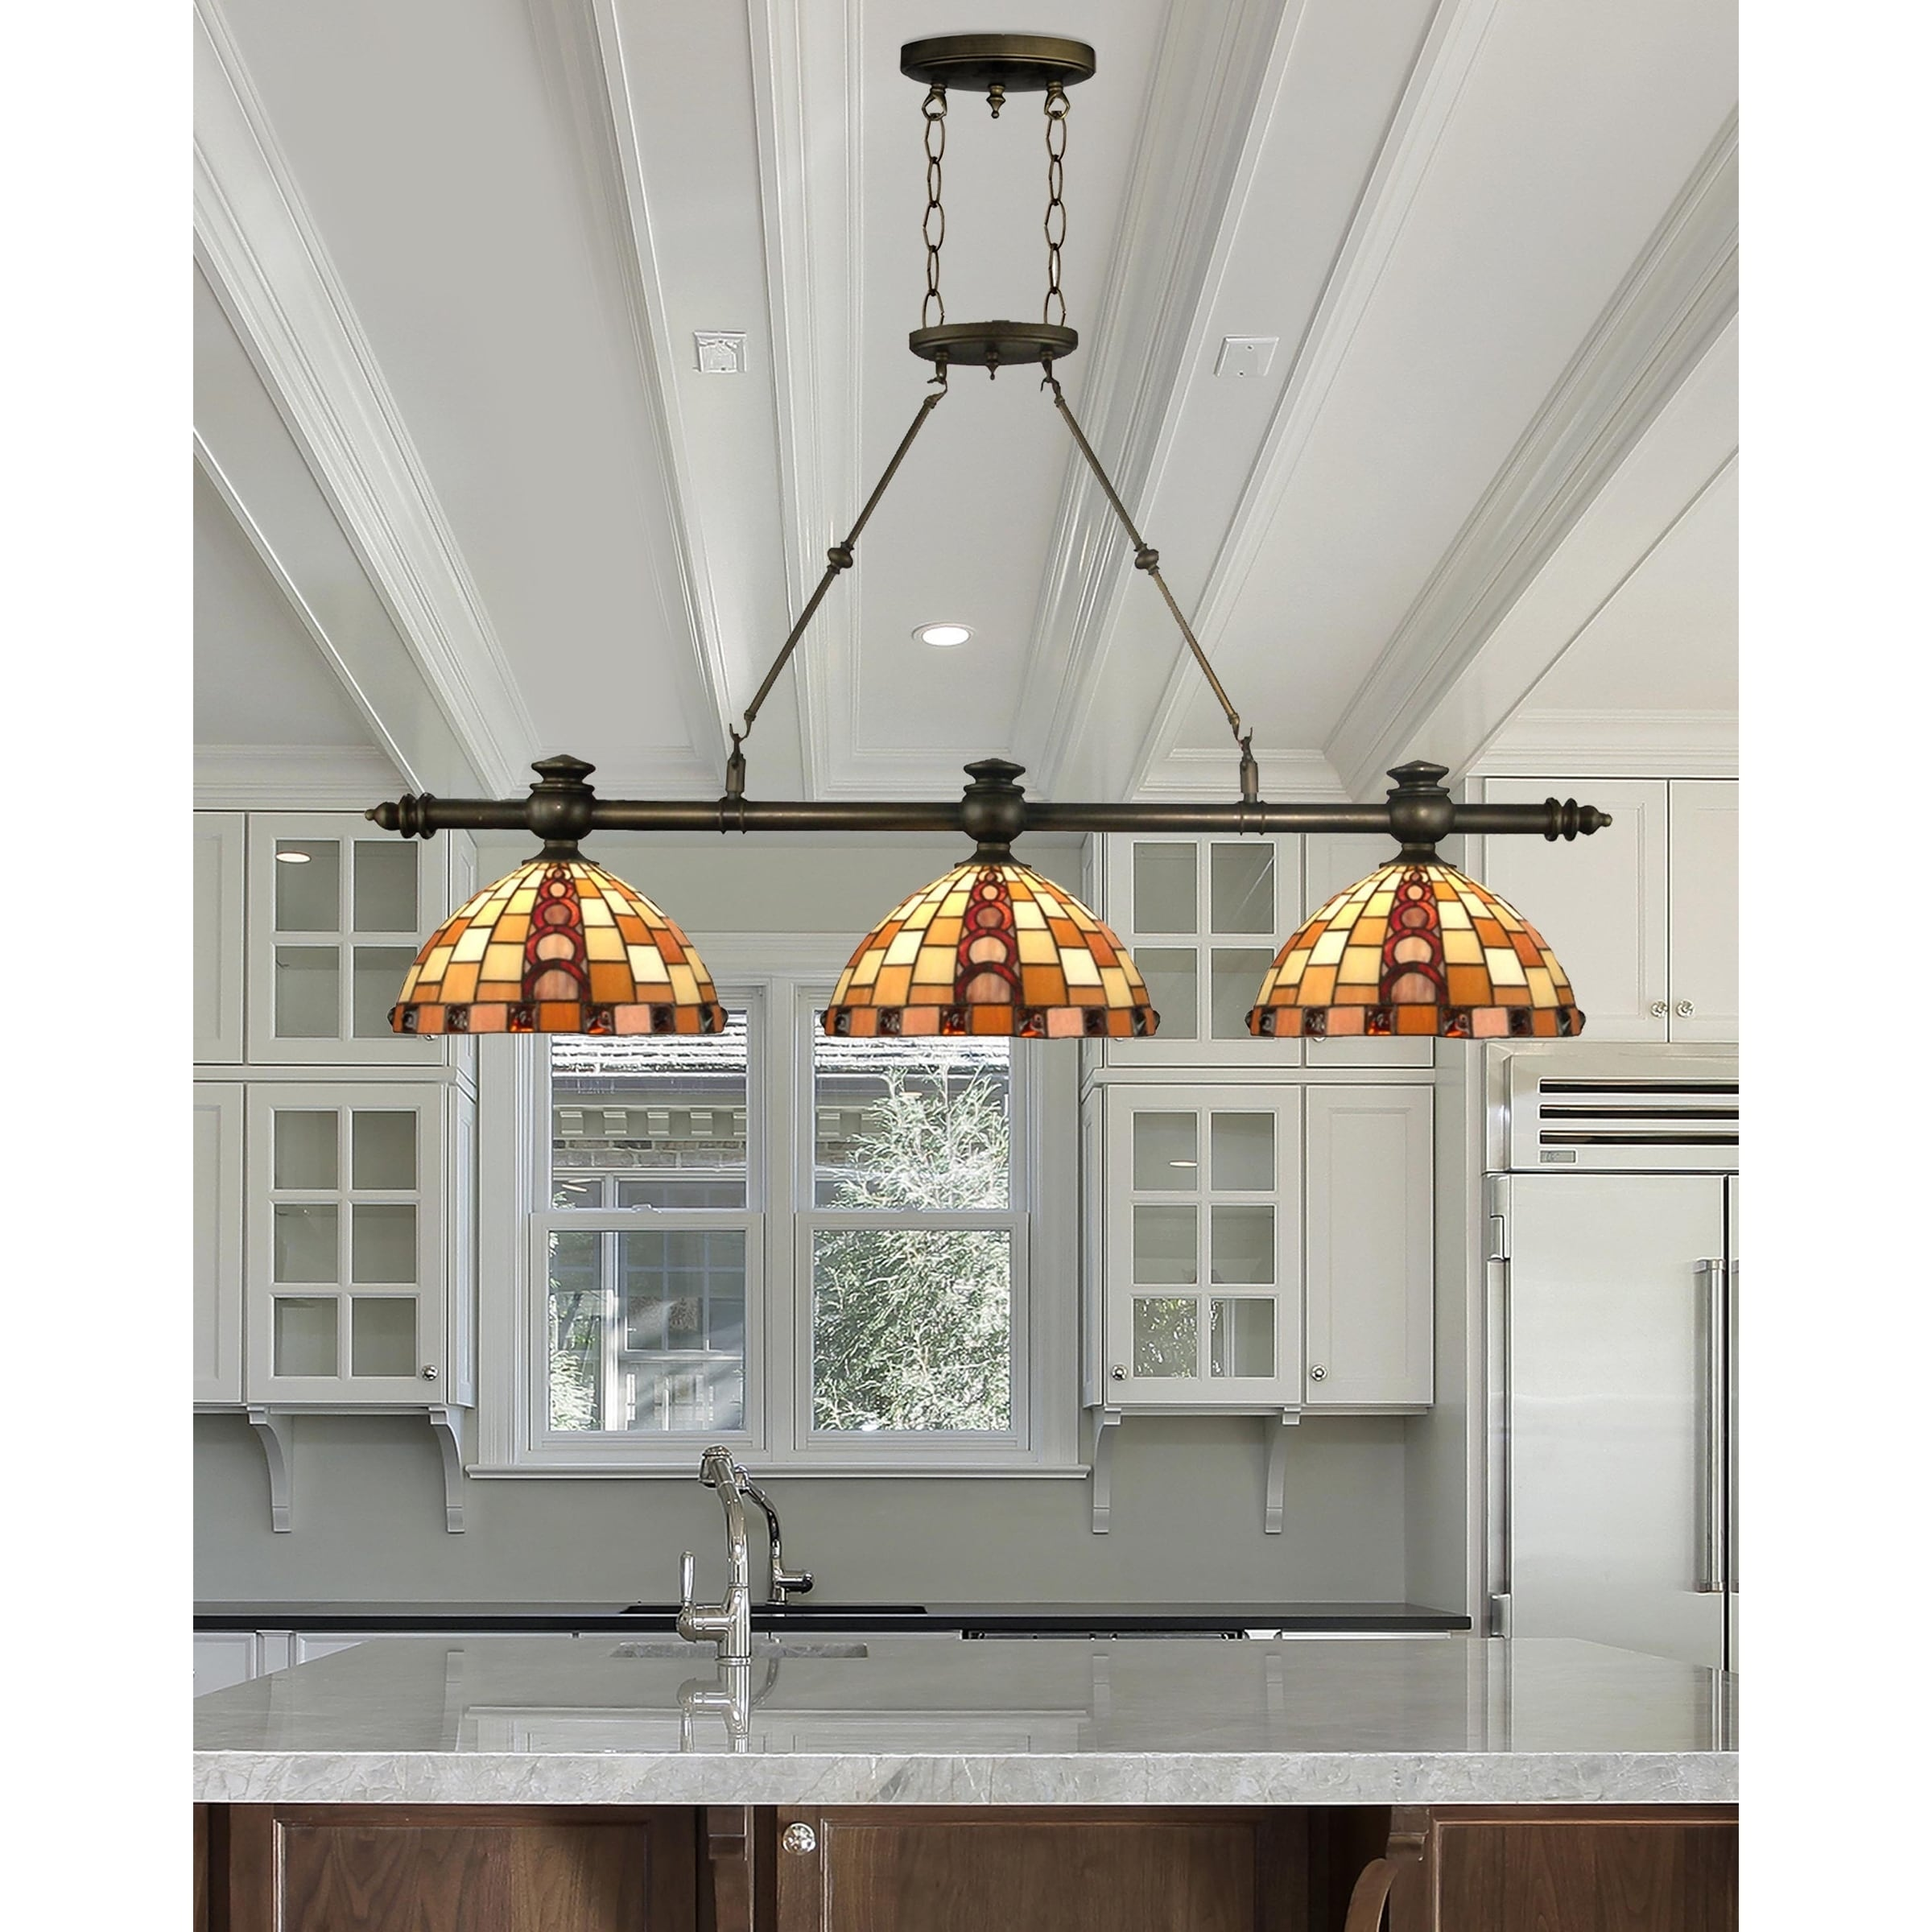 Springdale 495w baroque 3 light island hanging fixture free springdale 495w baroque 3 light island hanging fixture free shipping today overstock 23109986 arubaitofo Choice Image